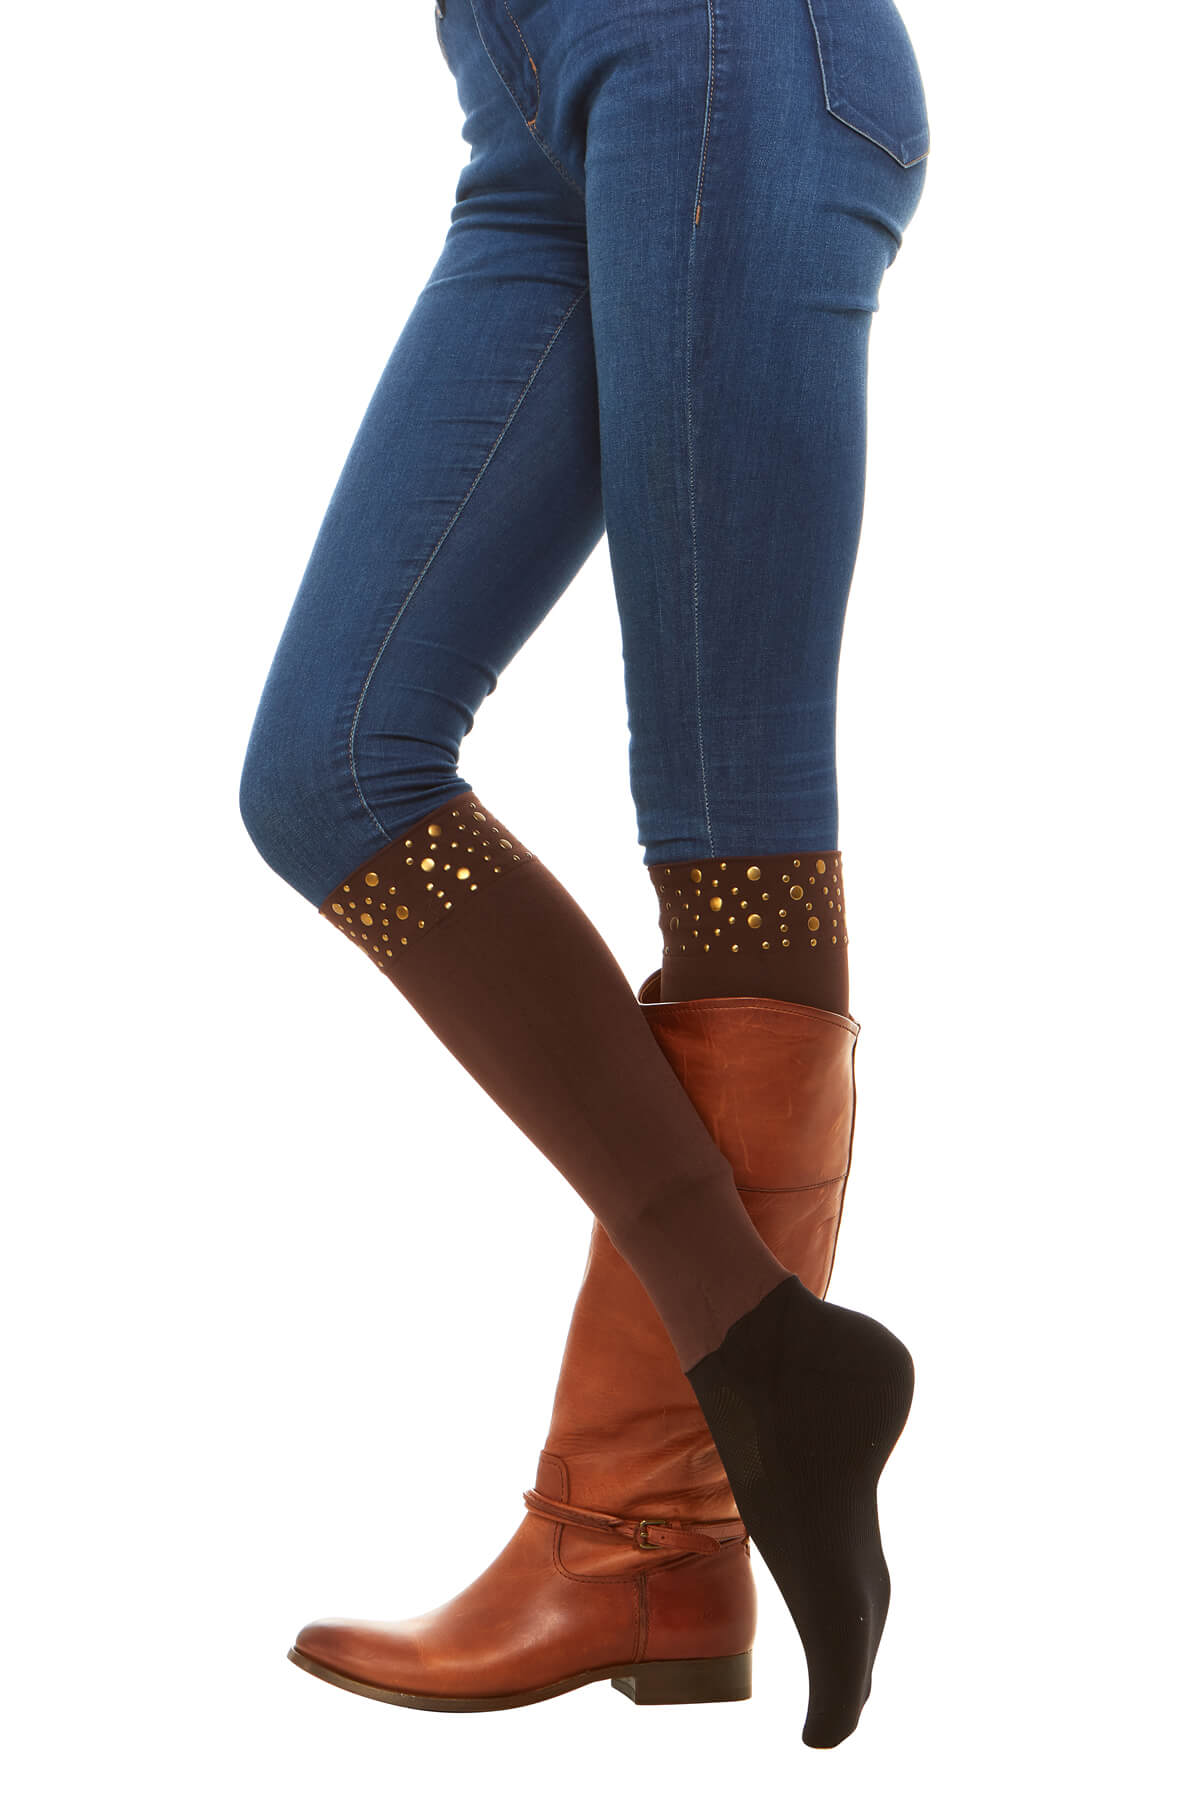 Sleek Compression sock design with nailhead trim detail with attached performance athletic sock Perfect for rainboots and cowboy boots.